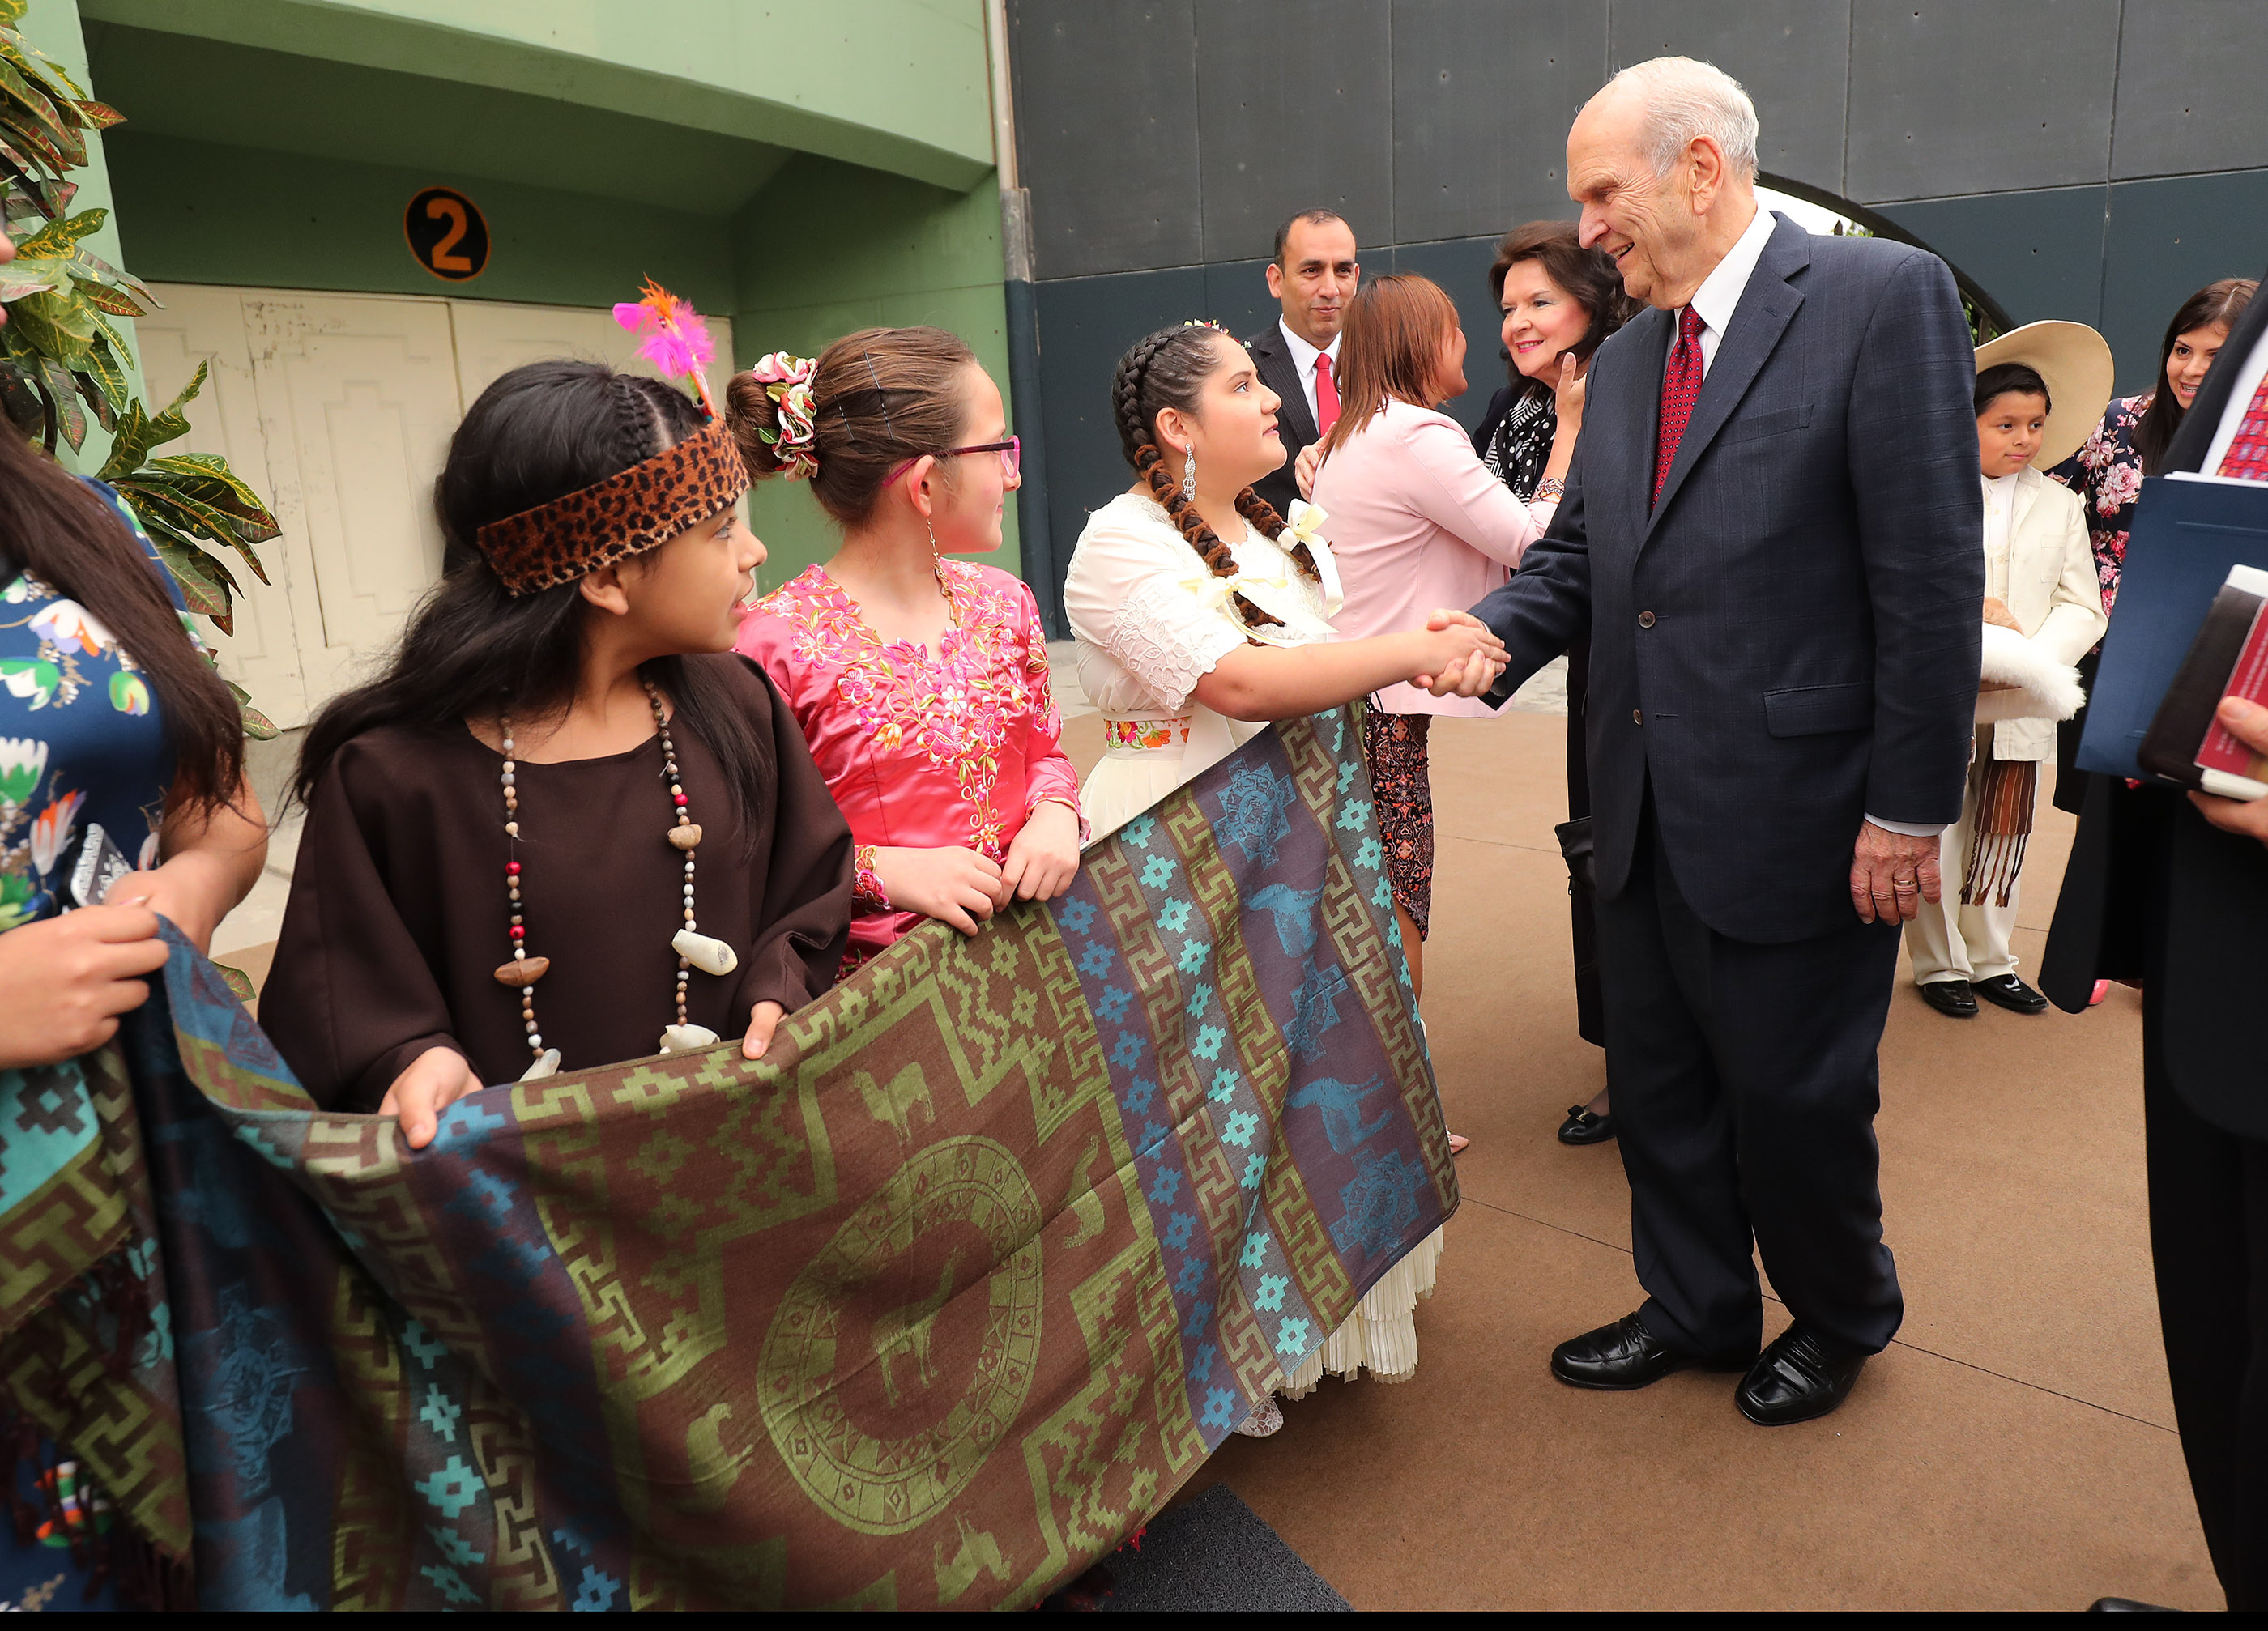 President Russell M. Nelson of The Church of Jesus Christ of Latter-day Saints is greeted prior to a devotional in Lima, Peru on Oct. 20, 2018.